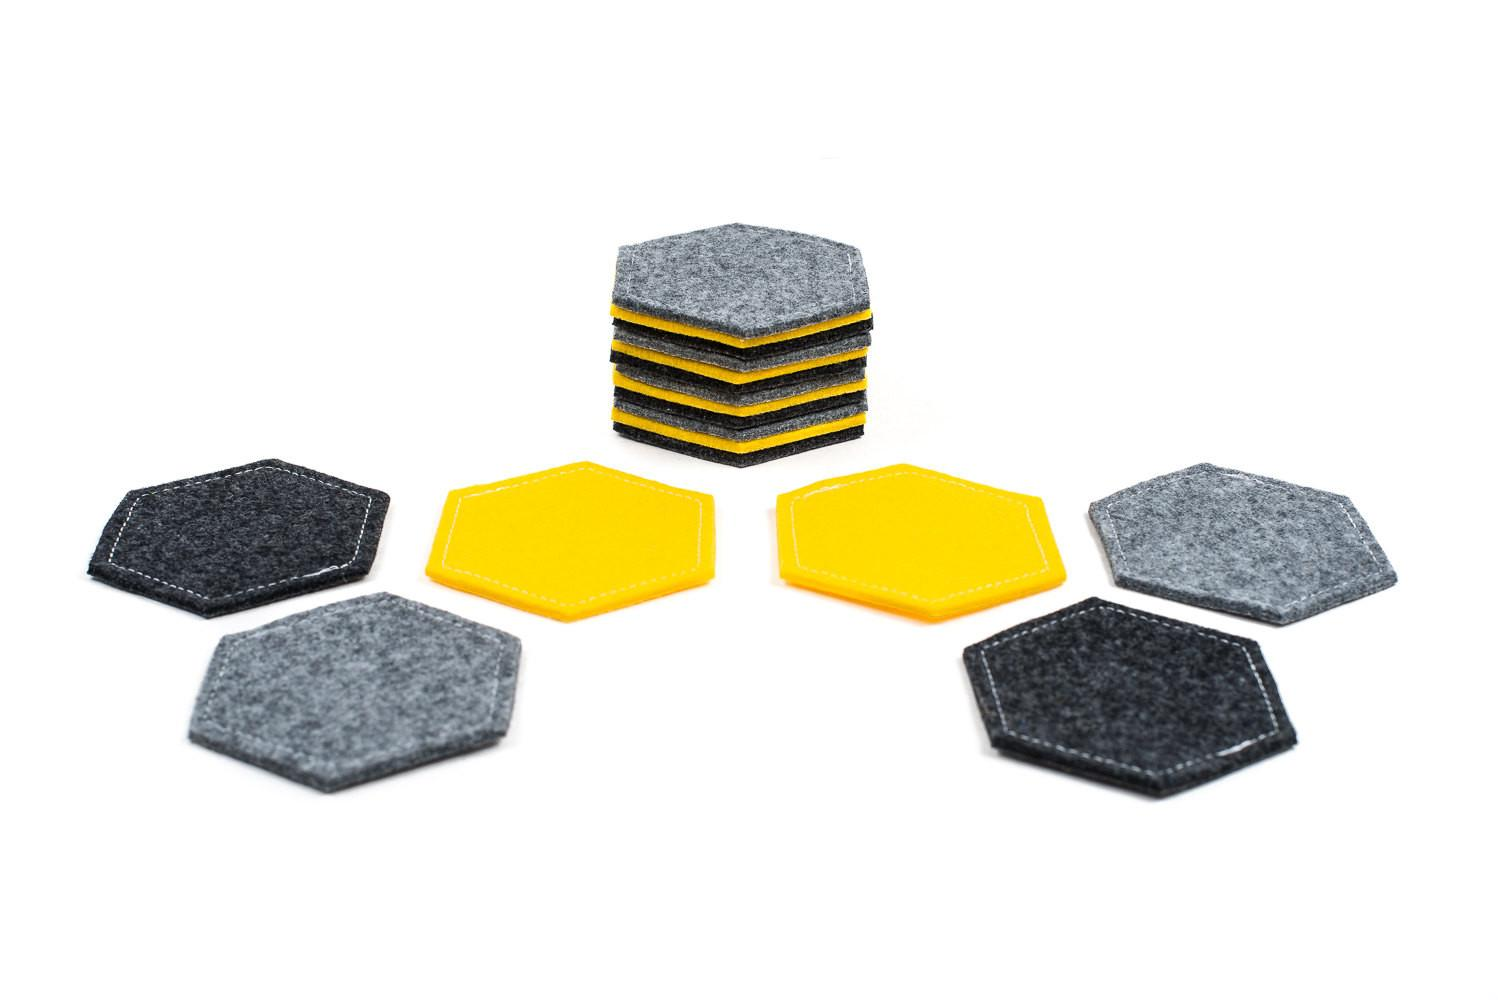 Felt Coasters Hexagon Fabric Geometric